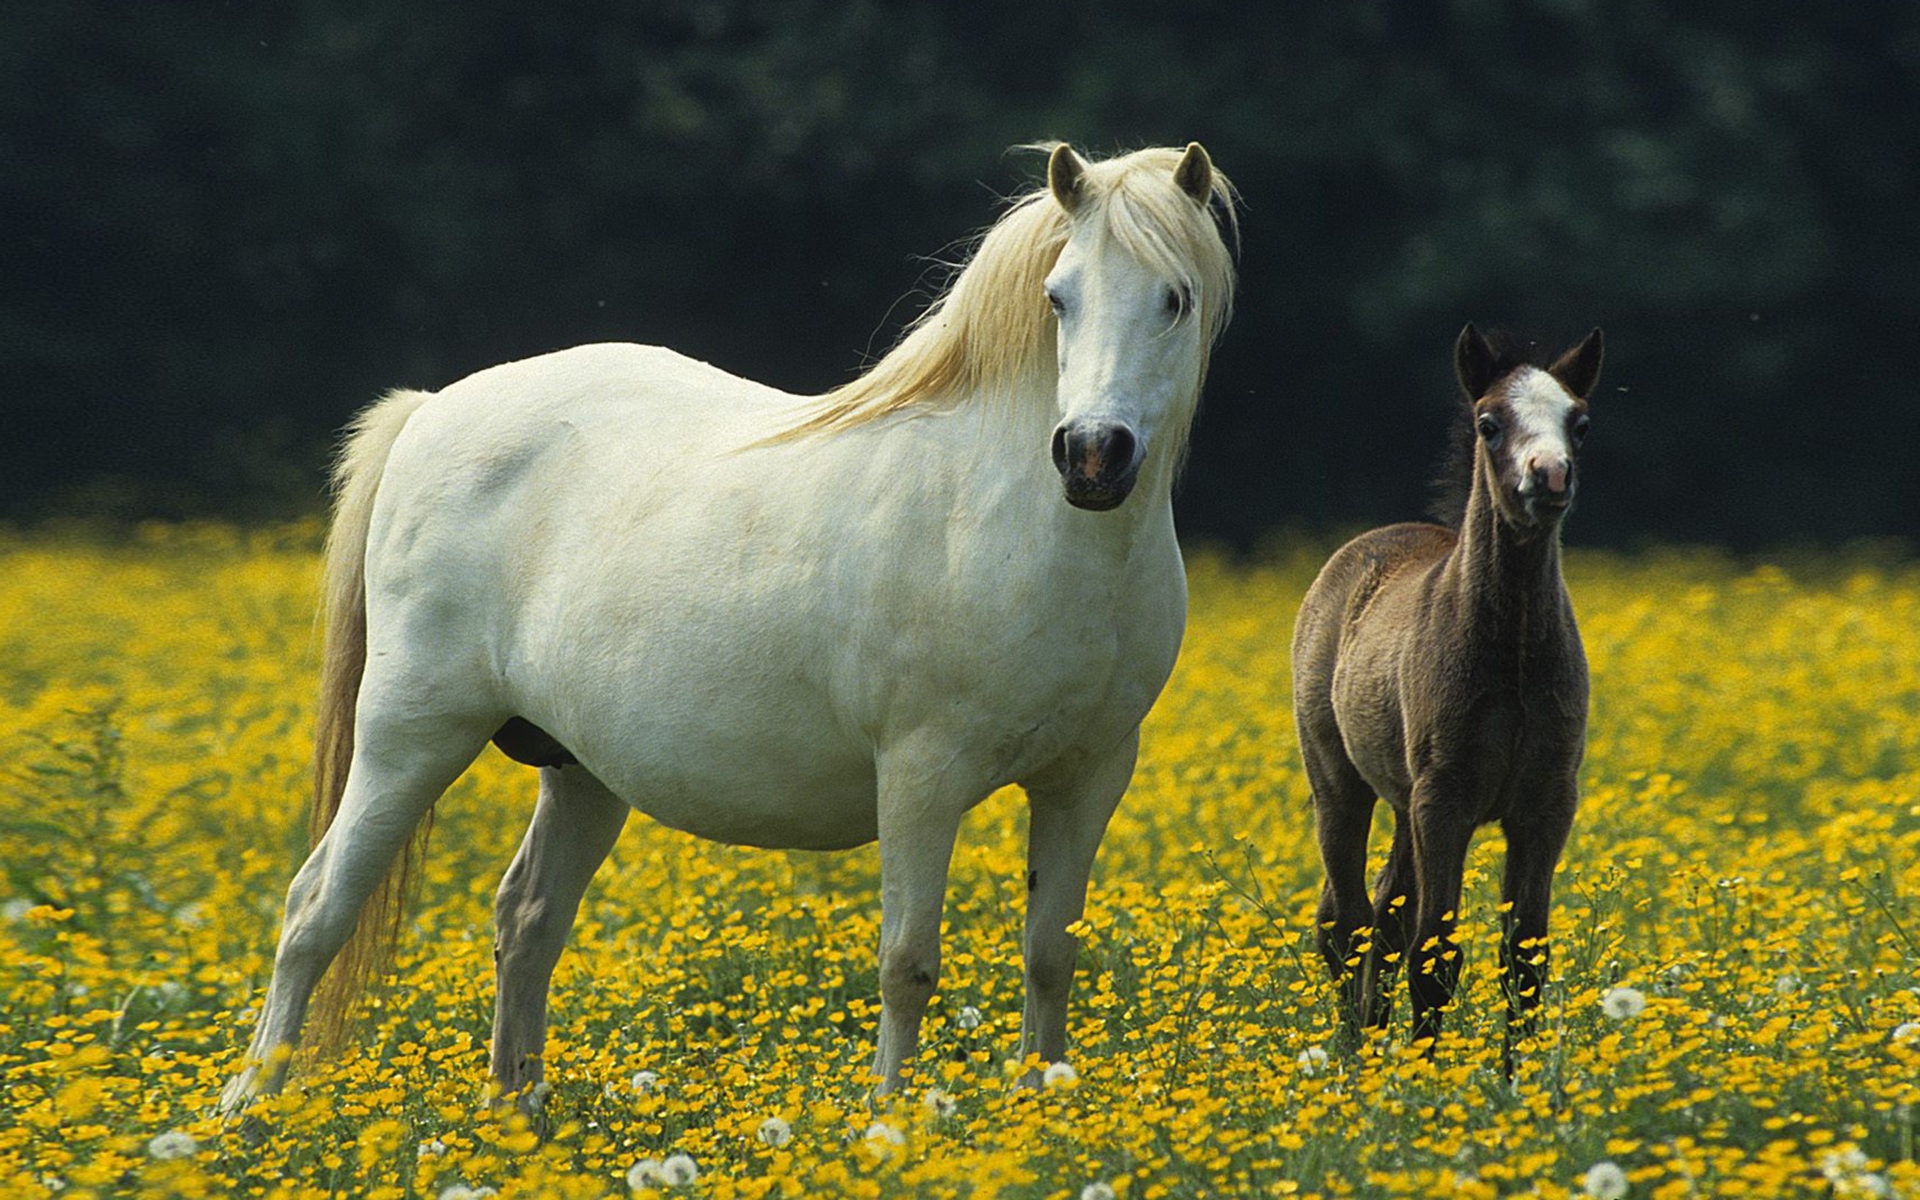 Cute Christmas Penguin Wallpaper White Horse Small Black Colt Meadow With Yellow Flowers